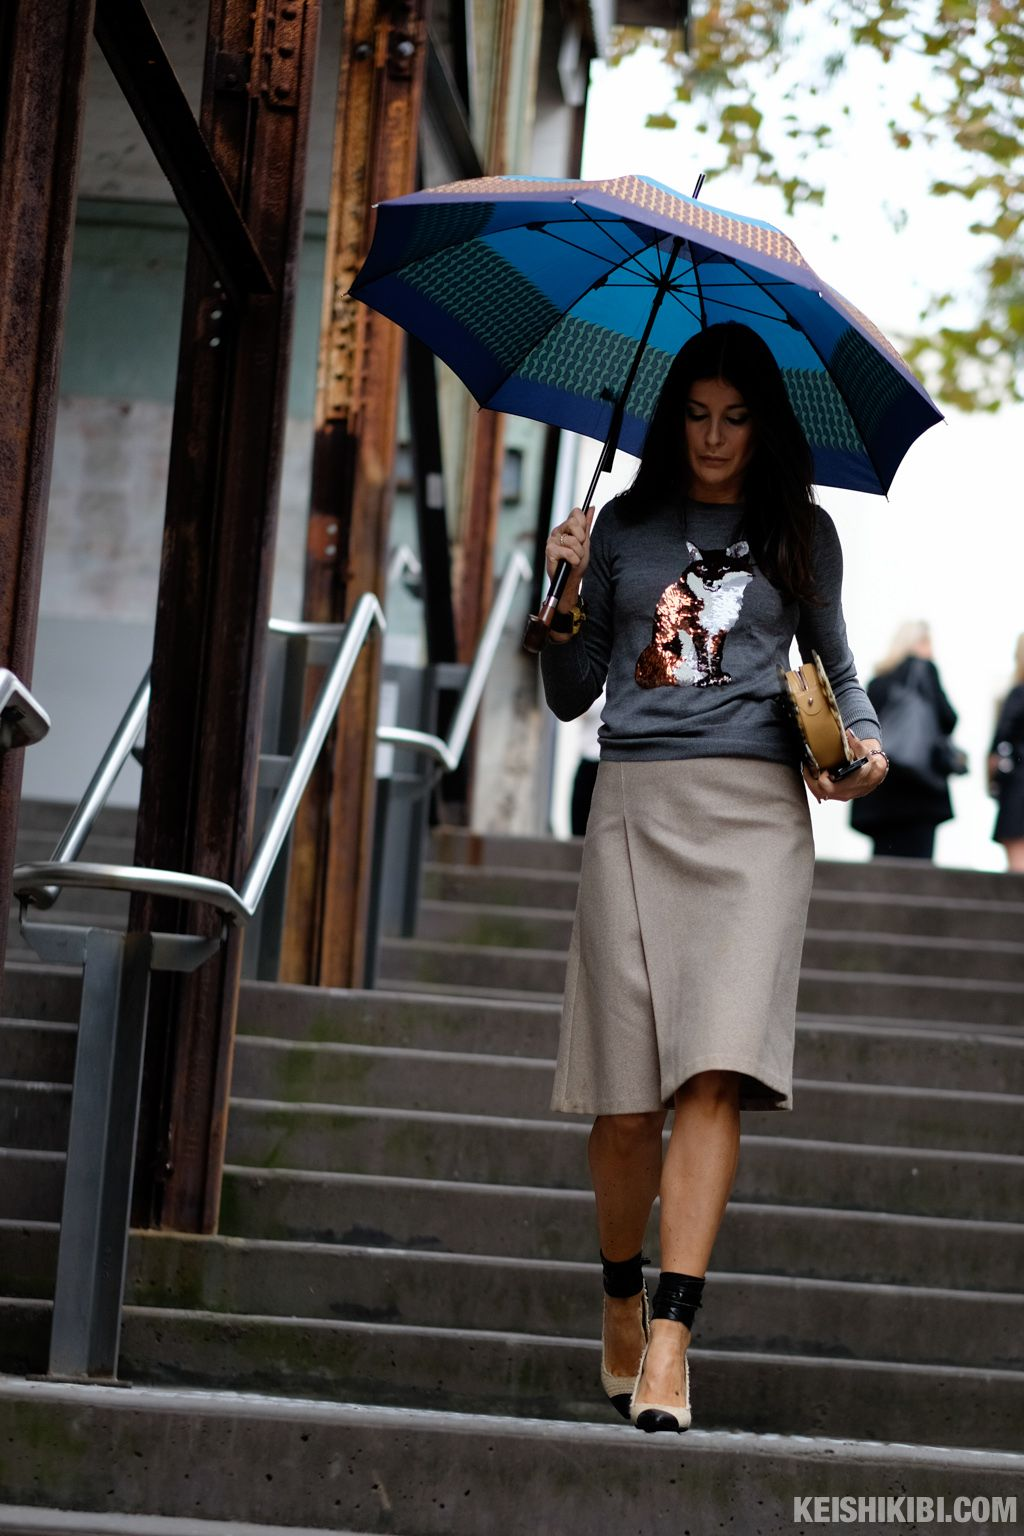 chic in the rain